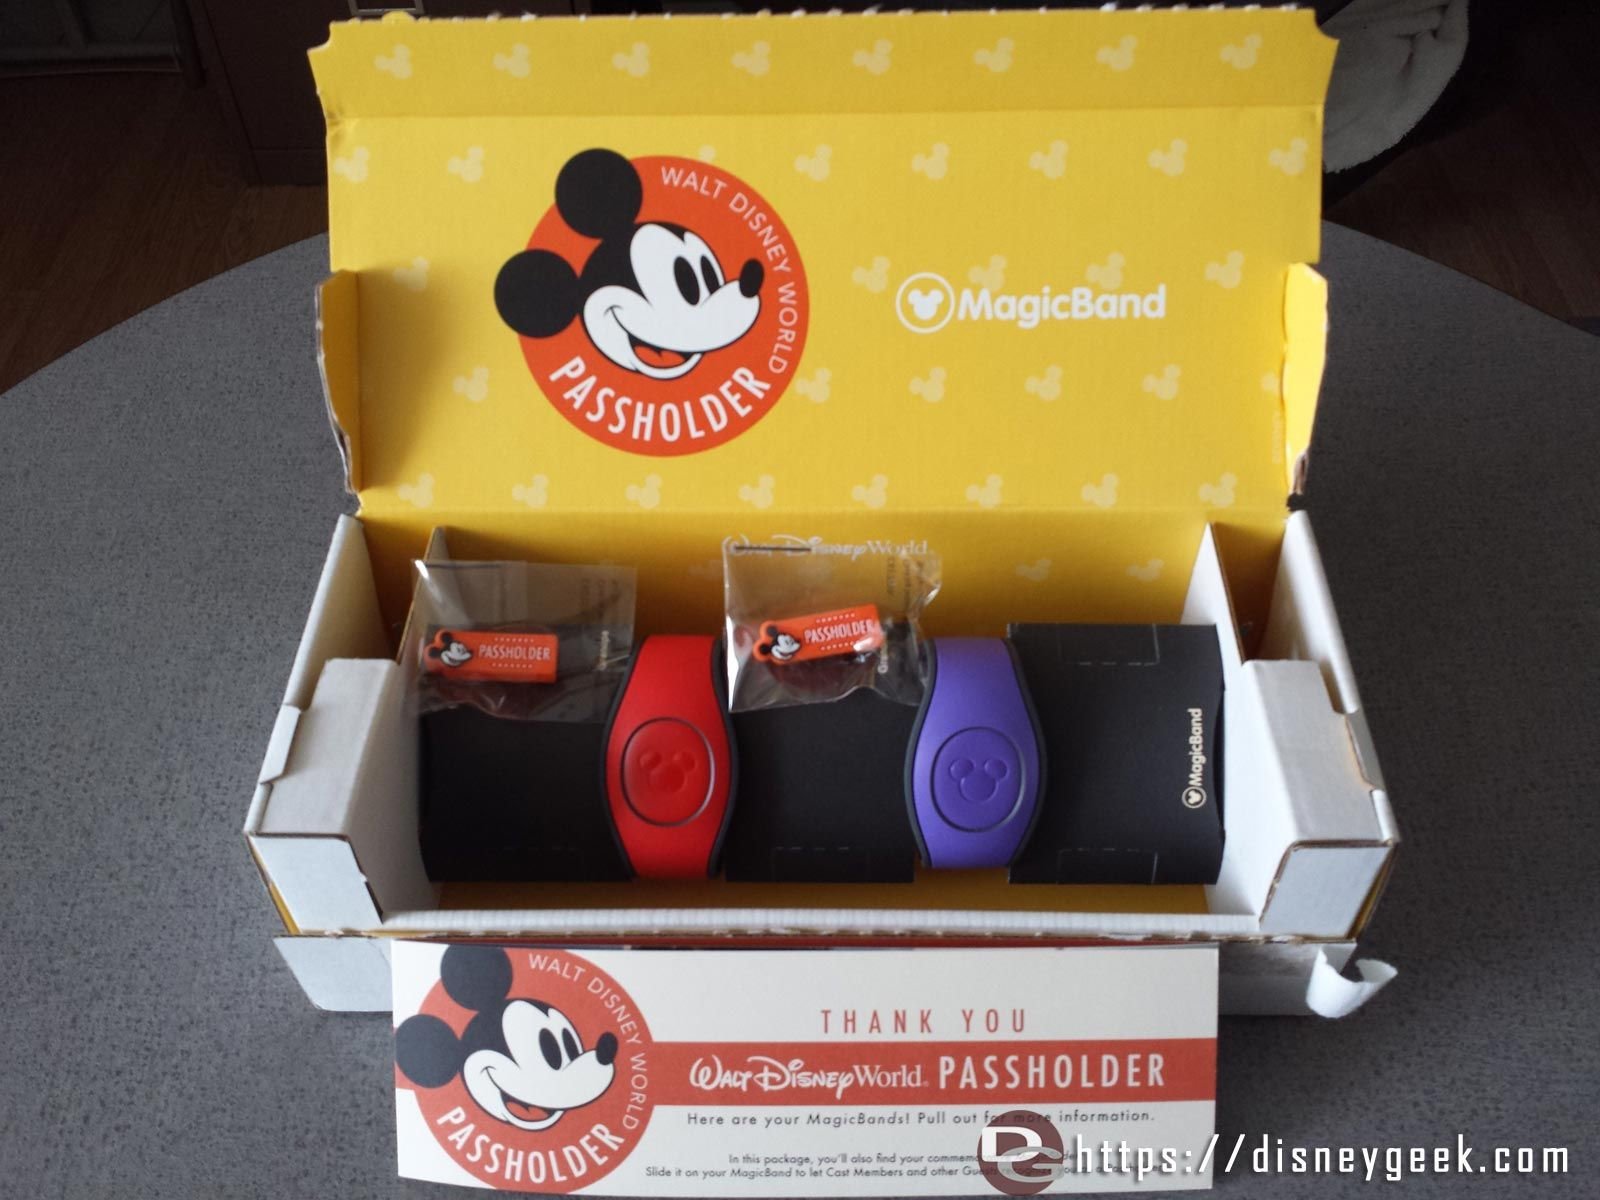 Mail Call - Annual Passholder MagicBand 2.0 & Previous Years Containers